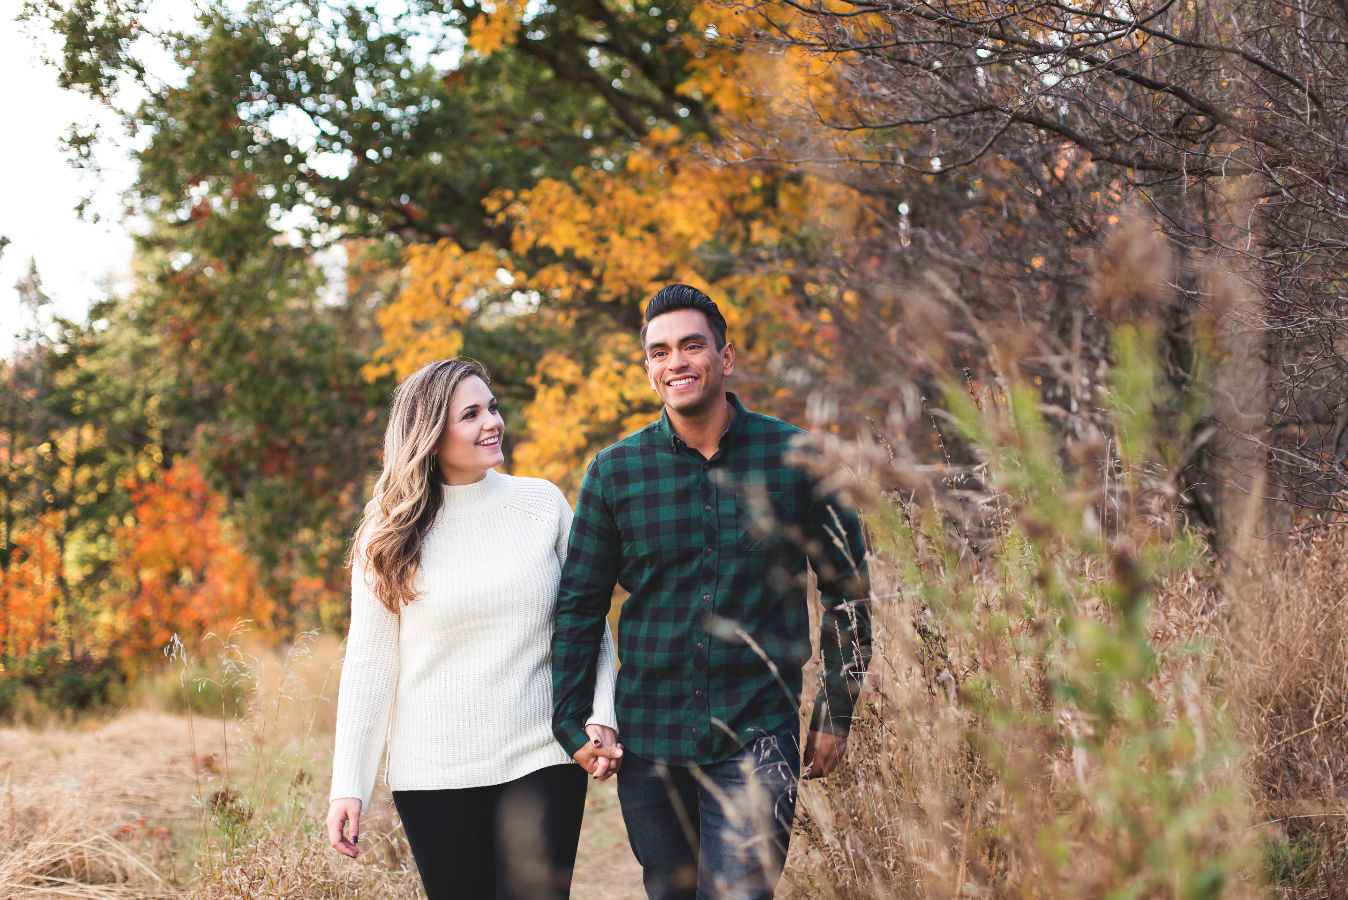 Engagement-Photography-Bruce-Trail-Rain-Hamilton-Burlington-Oakville-Niagara-Toronto-Wedding-Photographer-Photo-Image-1.png